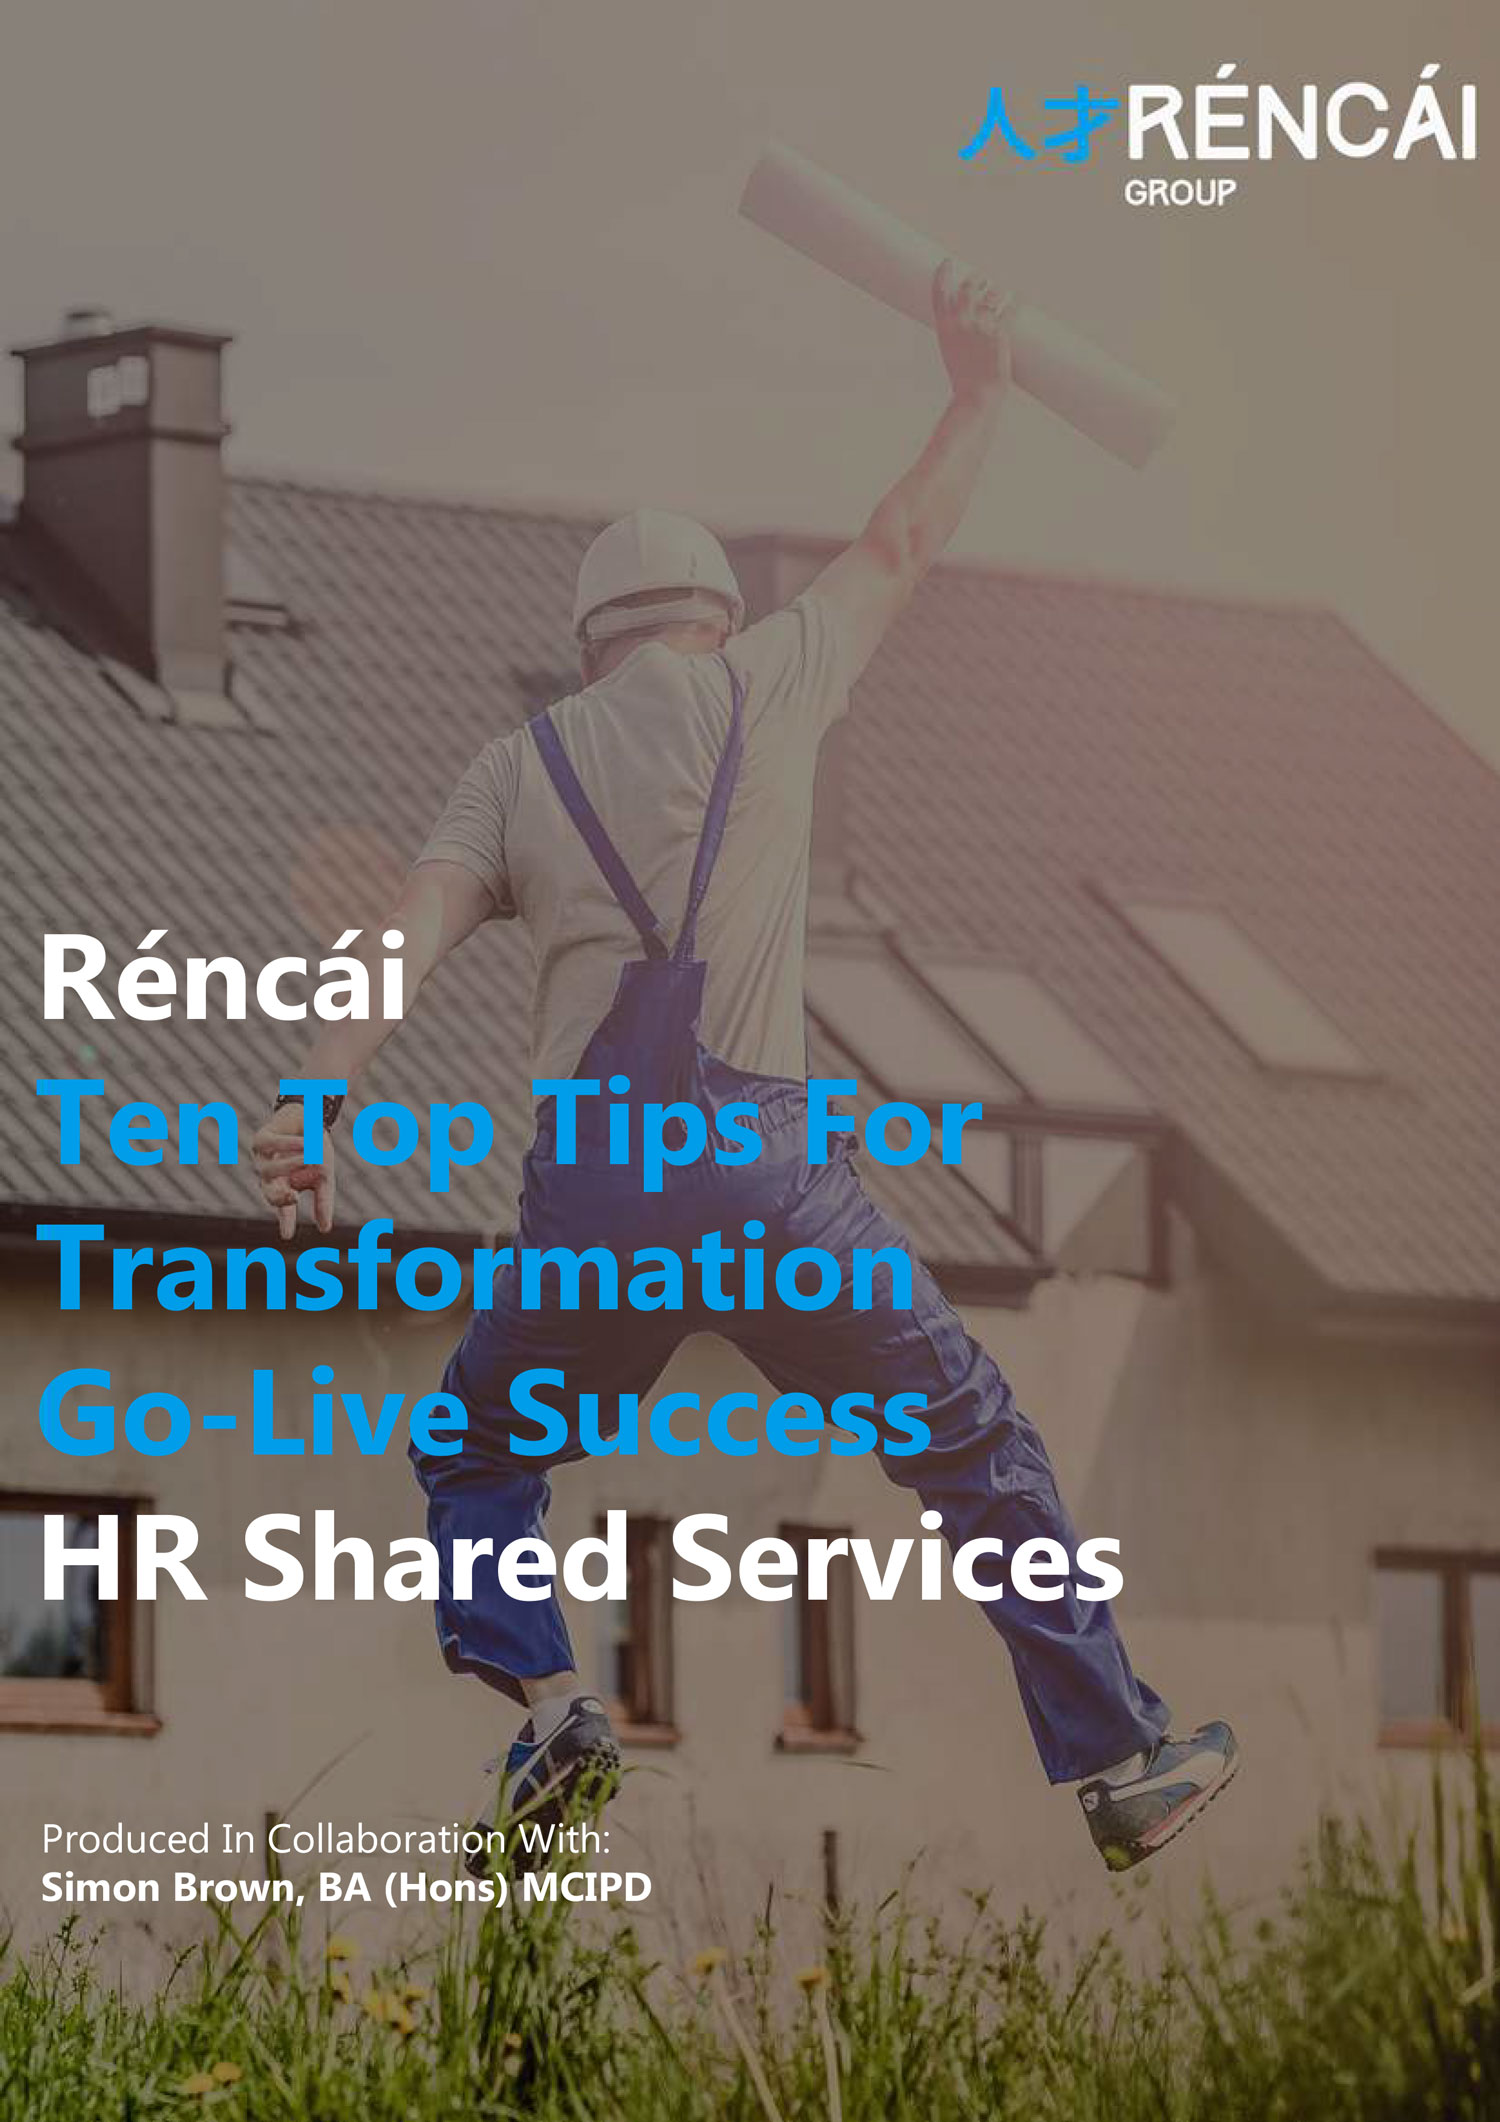 Rencai paper - transformation tips